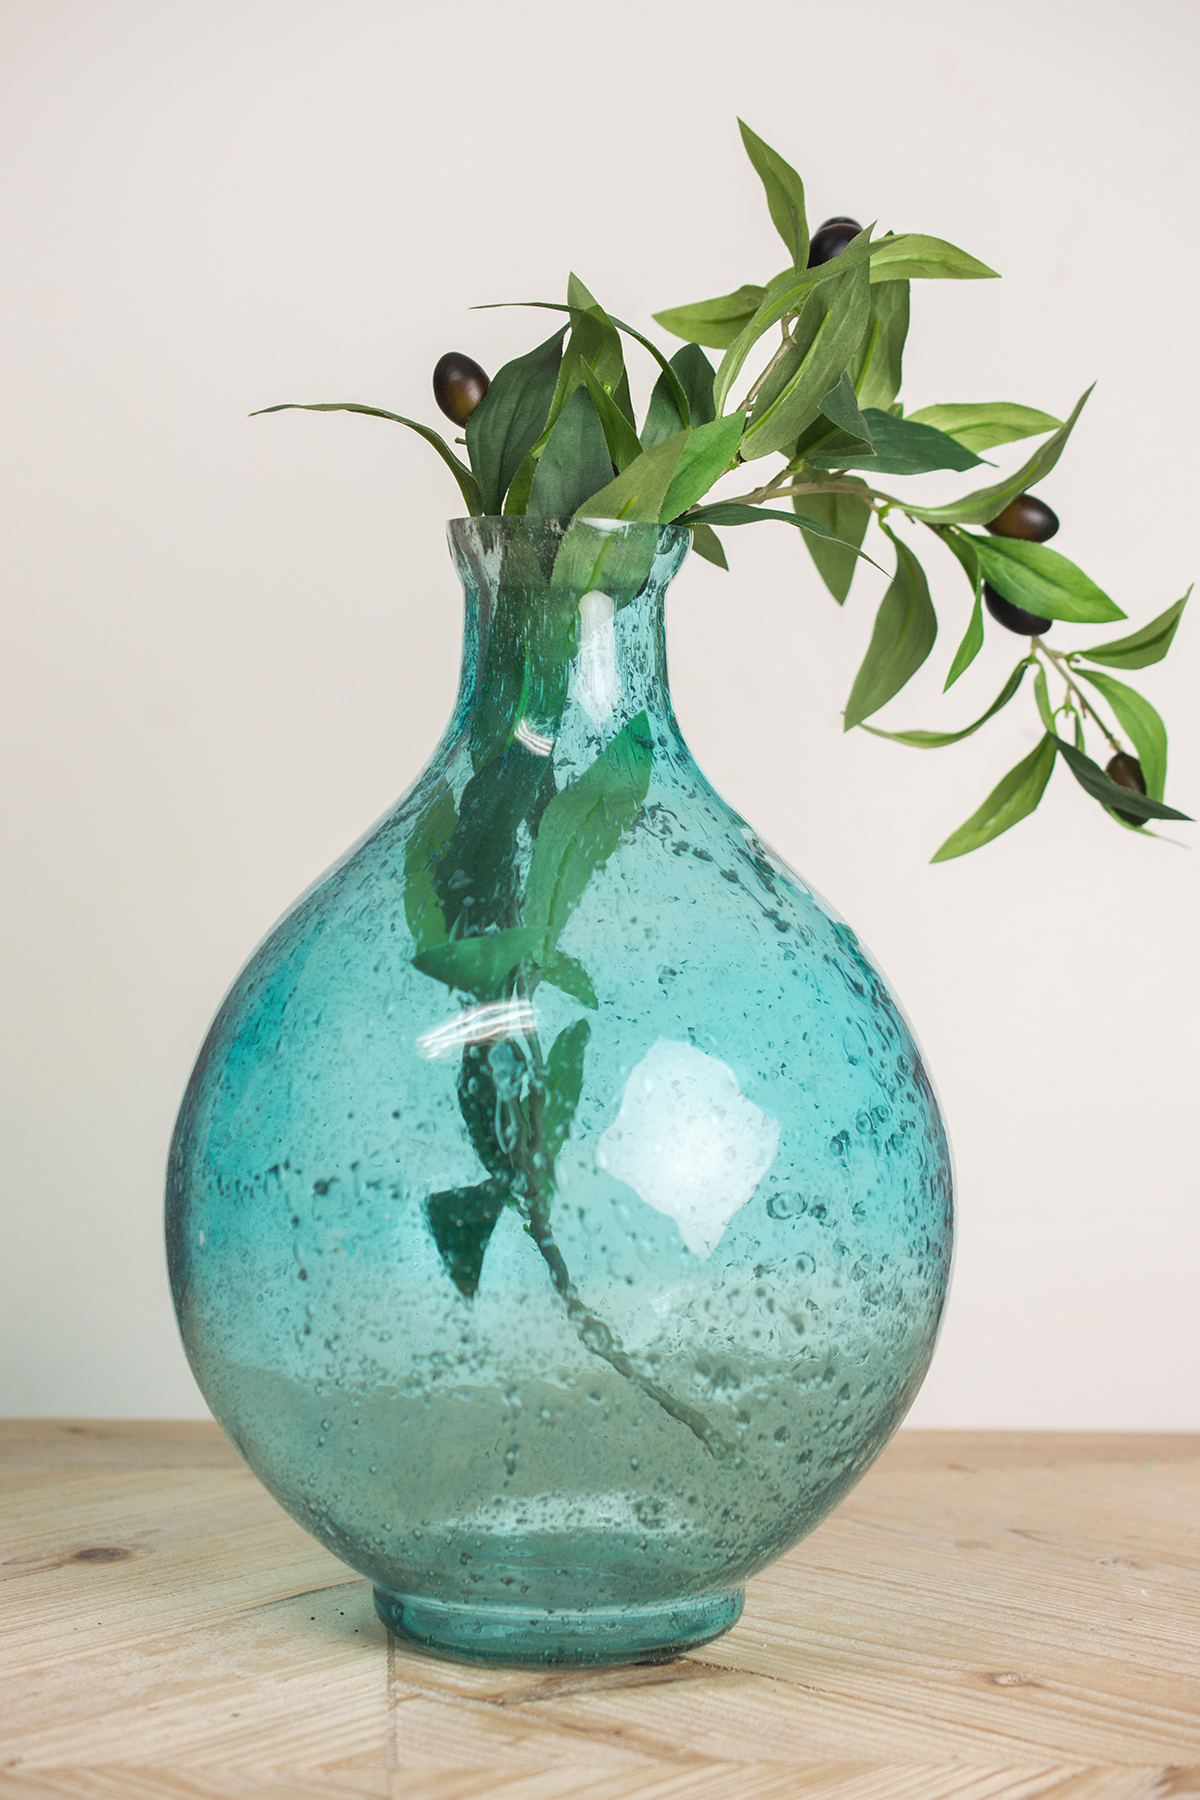 Bubble fish bowl glass vase. These were manufactured to be used in the USA. Use outside of the USA at your own risk. Also good to use for terrarium designs. We're happy to help. WGV Clear Bubble Bowl Glass Vase, Inch fish bowl/ flower centerpiece decor. $ Buy It Now.